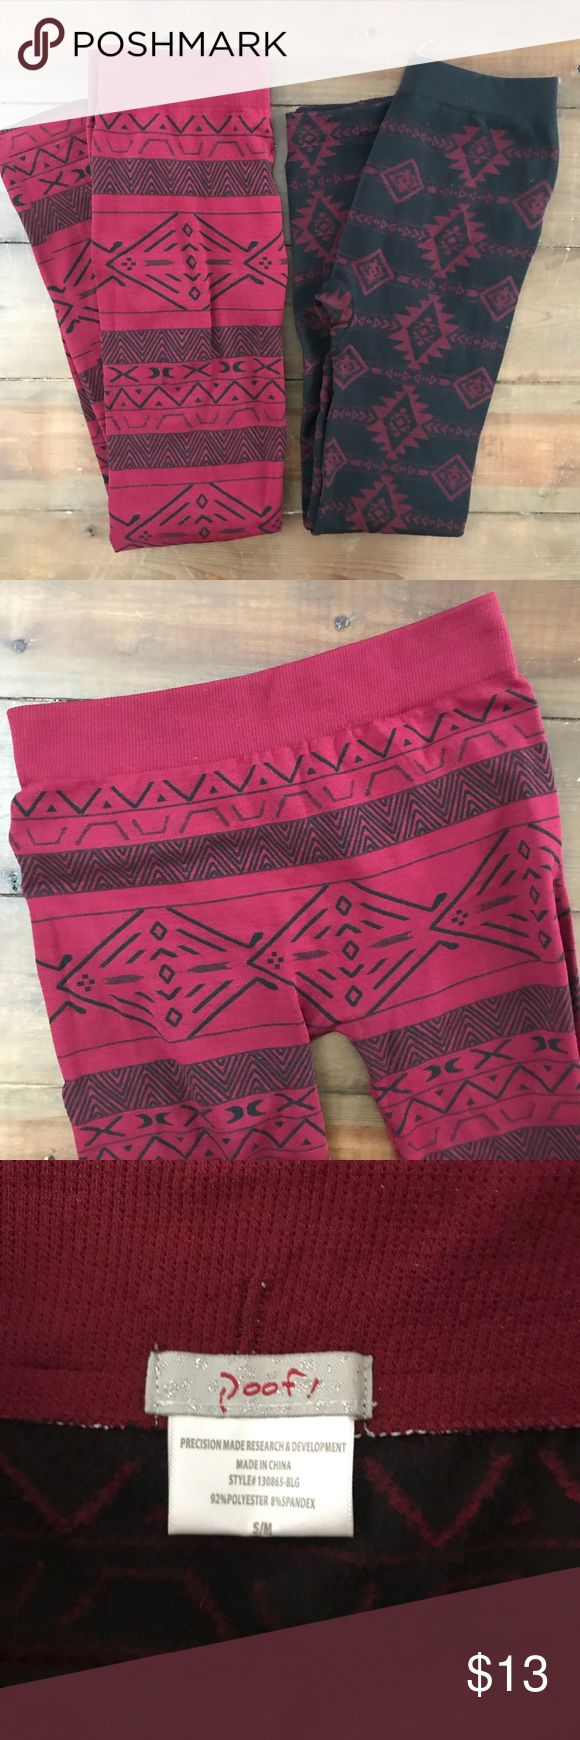 Bundle of 2 Tribal Print Leggings Garnet & Black 2 pairs of leggings! Garnet and black colors with tribal print. Both are super soft and cozy on the inside. Black is Pink Rose brand size small and garnet is Poof brand size small/medium. They fit similar! Pants Leggings